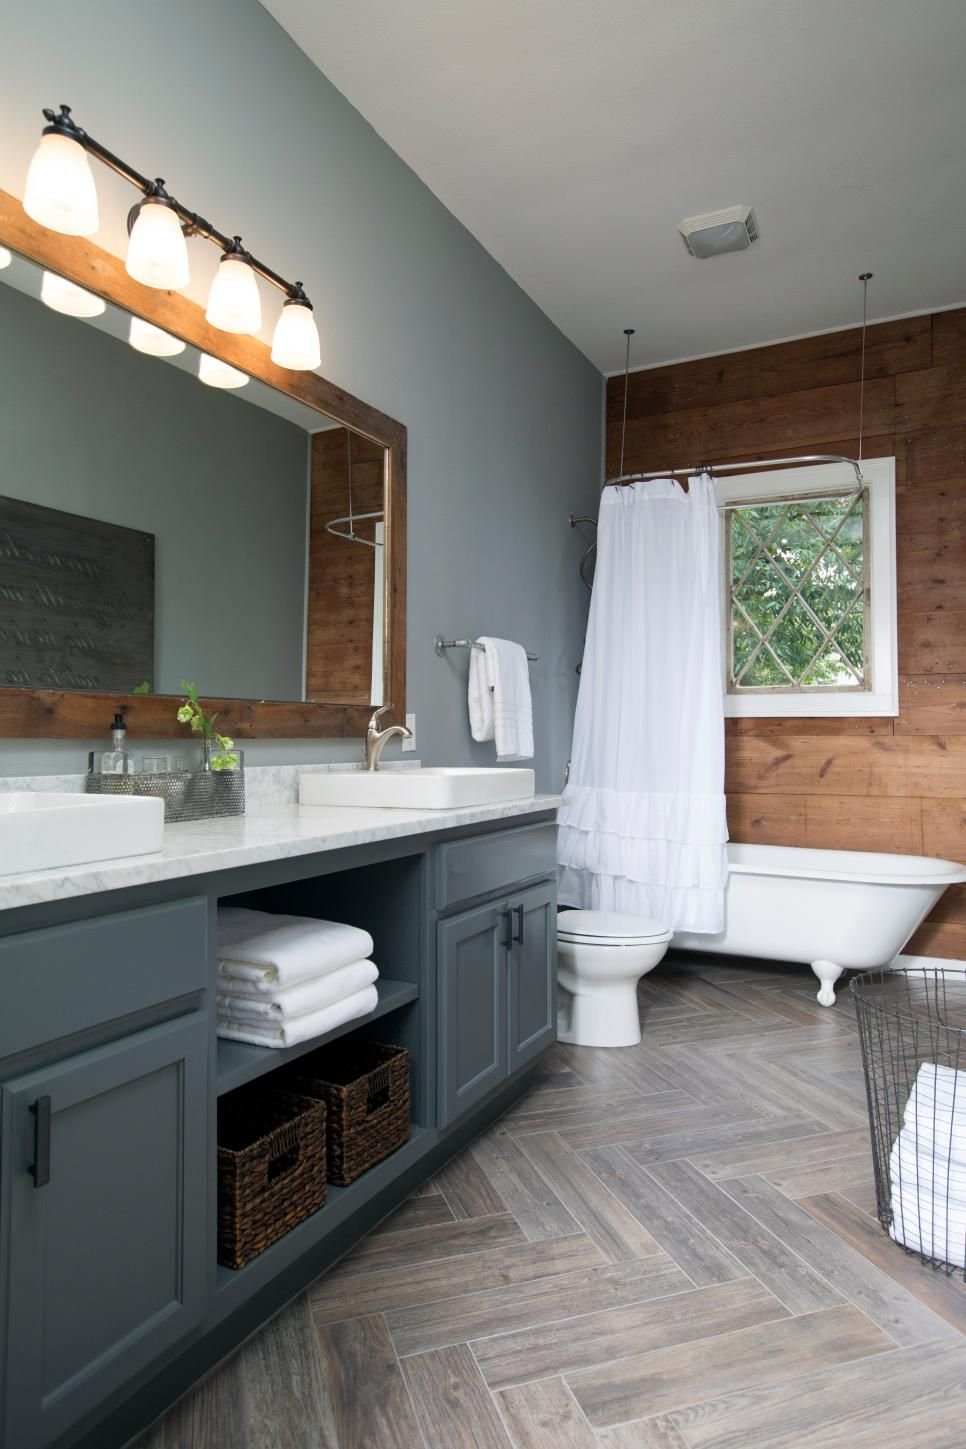 Fixer upper hgtv bathrooms moreover fixer upper hgtv joanna gaines - Fixer Upper S Best Bathroom Flips